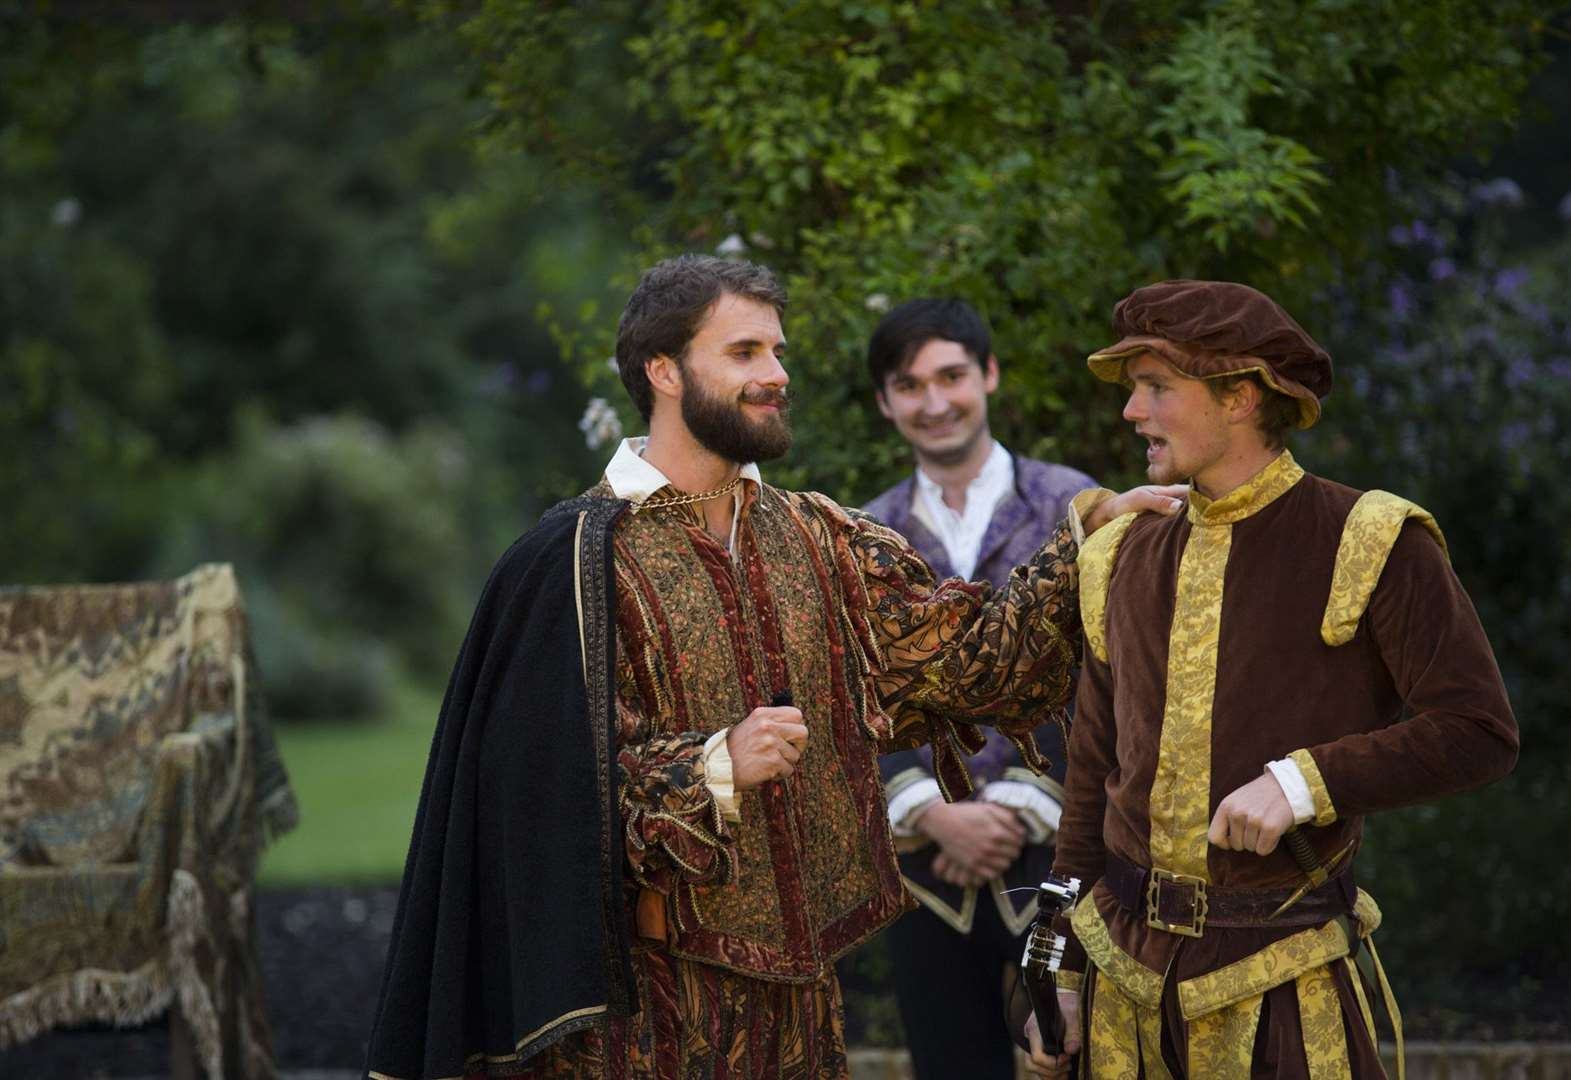 A Shakespeare festival to enjoy on midsummer nights